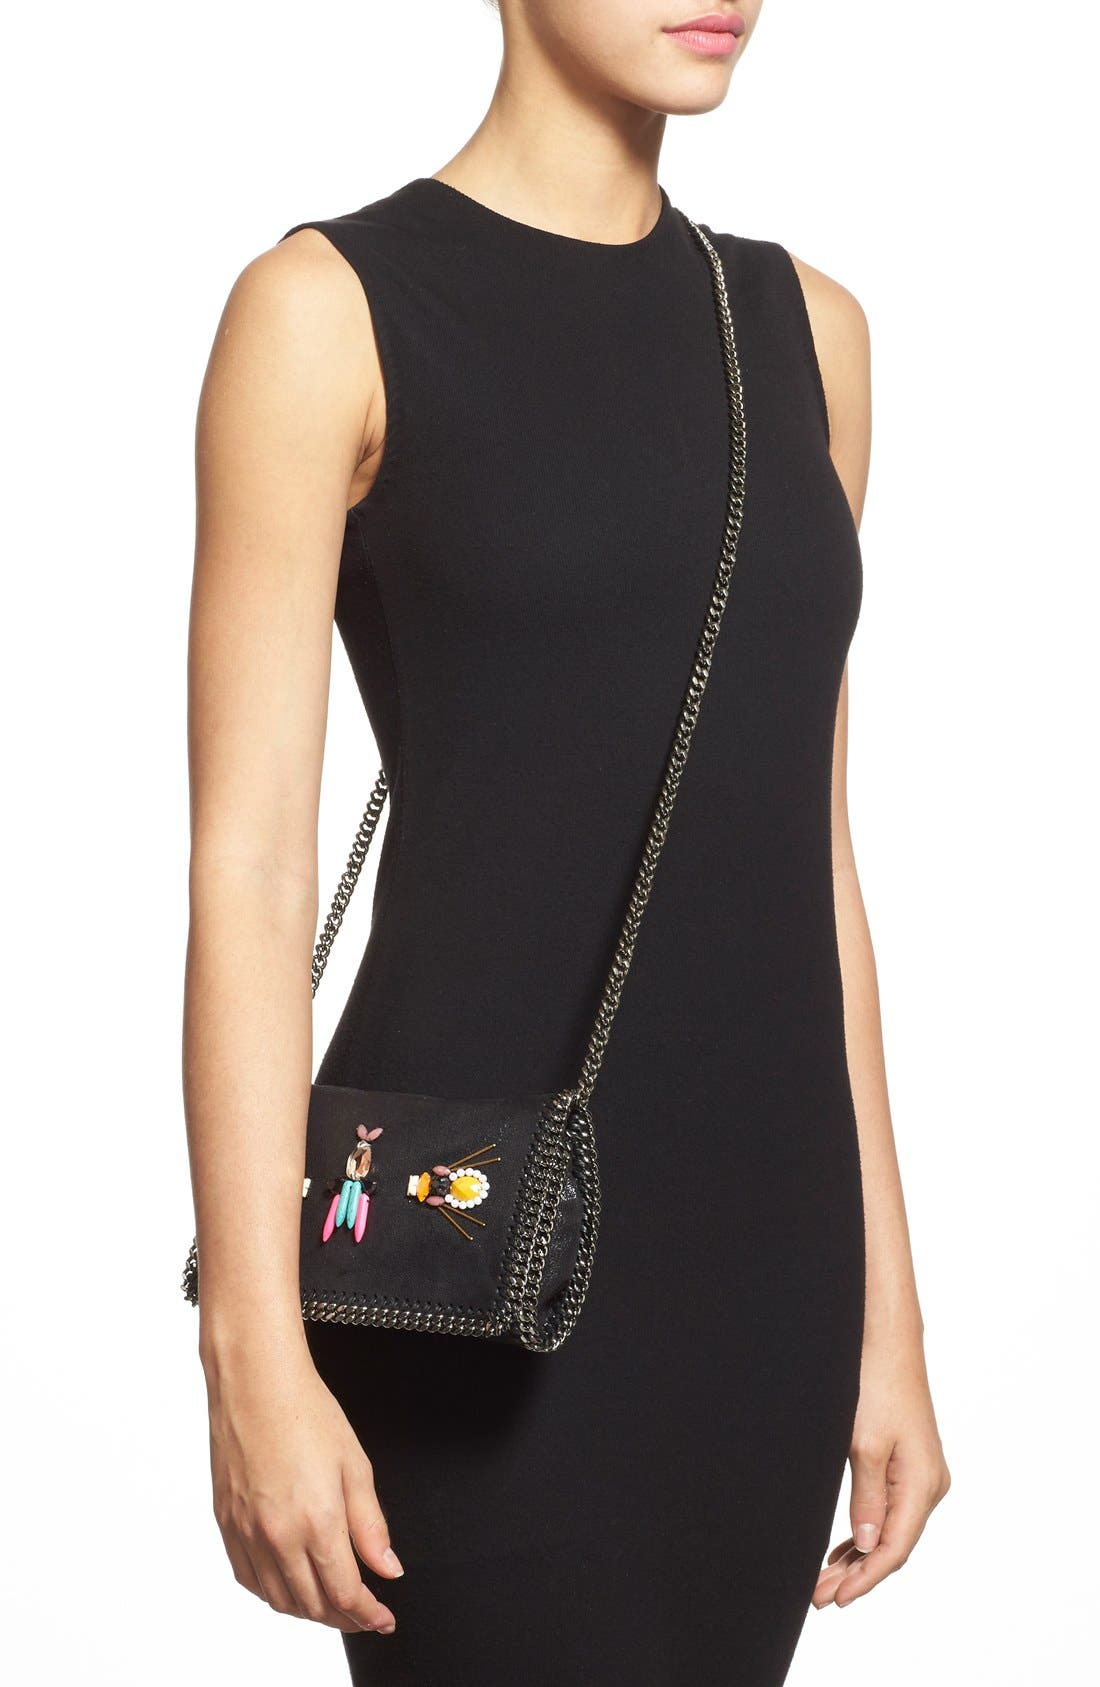 STELLA MCCARTNEY,                             'Falabella Crystal' Embellished Faux Leather Crossbody Bag,                             Alternate thumbnail 6, color,                             001